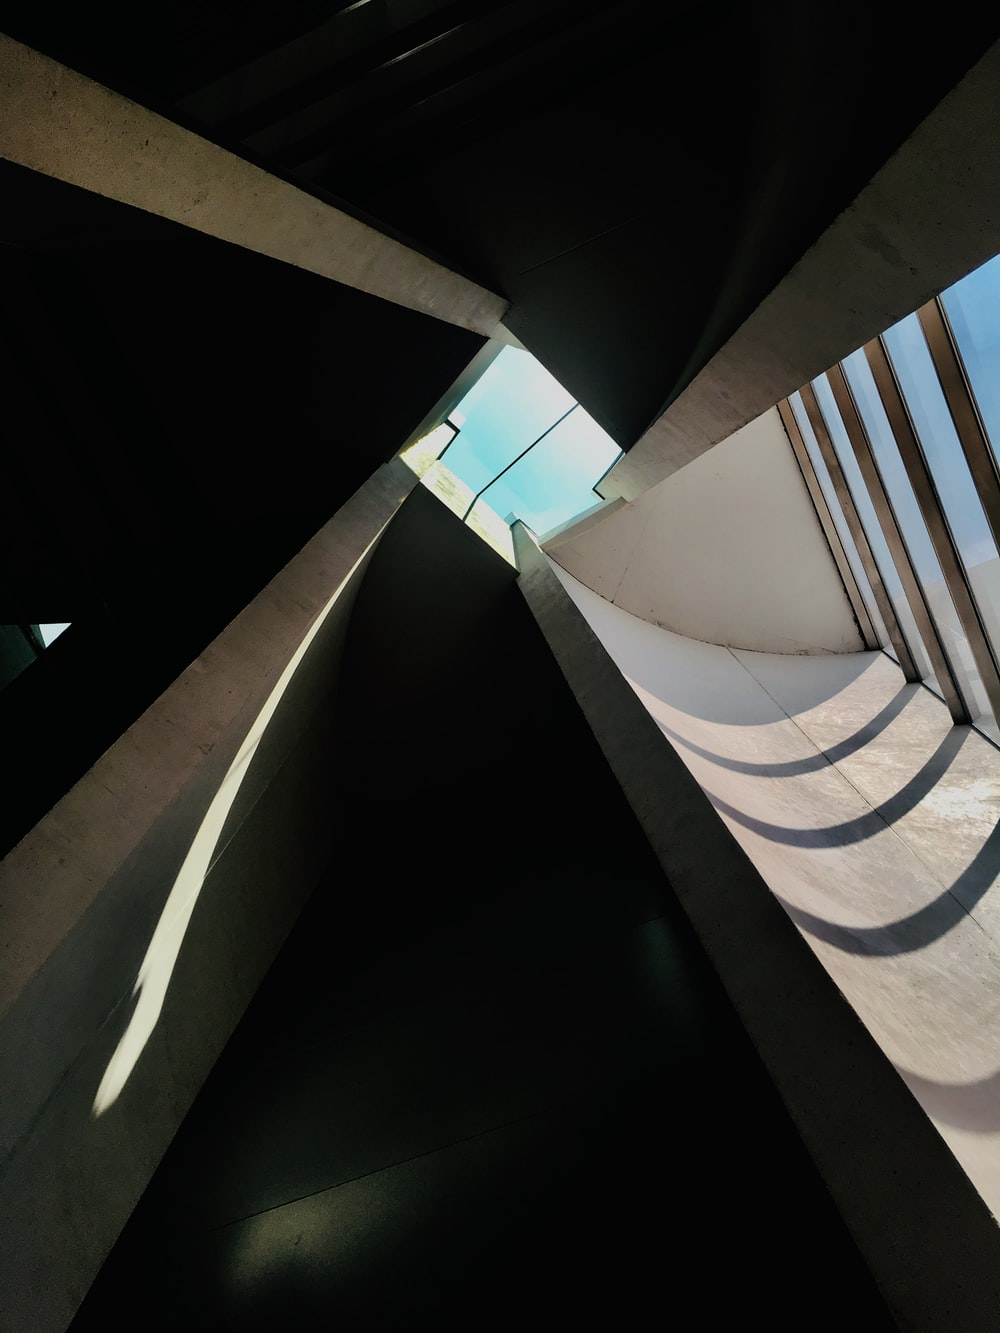 low-angle photography of building interior